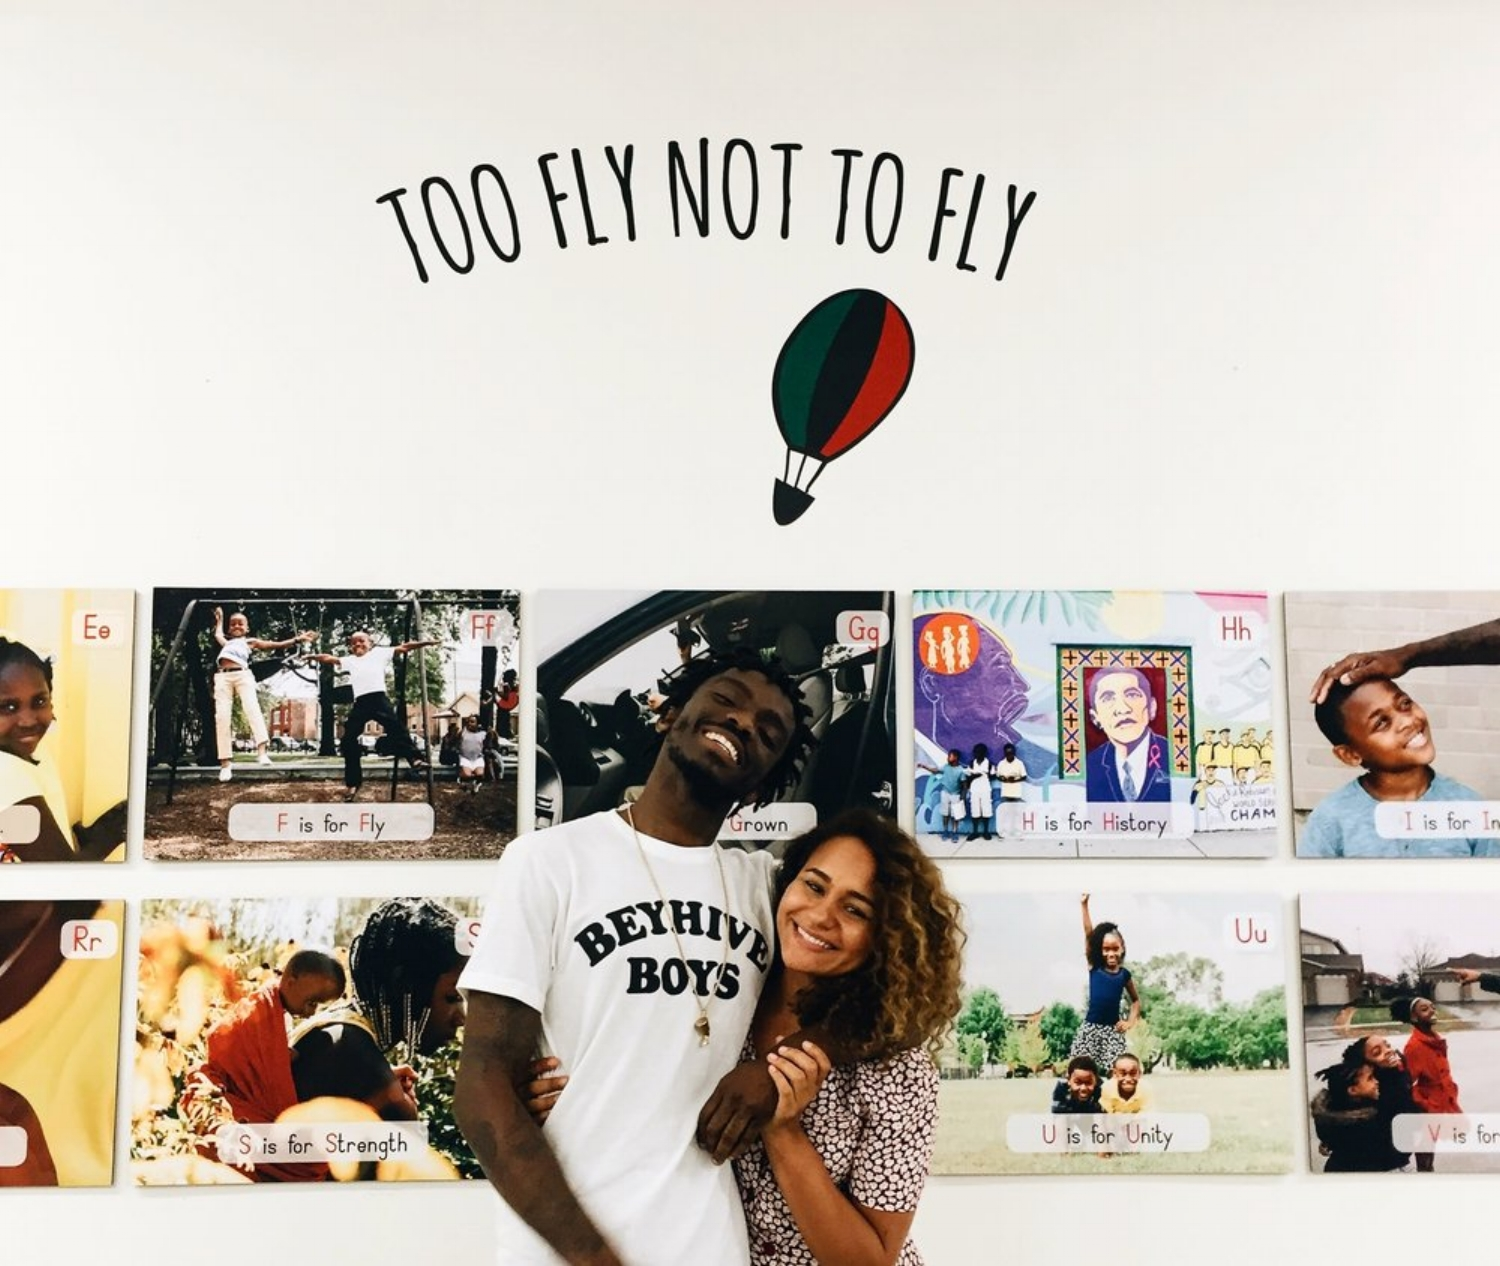 MEET THEAUTHORS. - Briana McLean and Desmond Owusu are the co-creators of Too Fly Not To Fly. Briana and Desmond met while teaching in Chicago Public Schools on the south side of the city. Their friendship and artistic collaboration began from there. Briana and Desmond believe in the importance and power of culturally relevant learning. Through the creation of Too Fly Not To Fly, Desmond and Briana seek to provide an outlet for young children to begin the deconstruction of various societal systems using the alphabet.